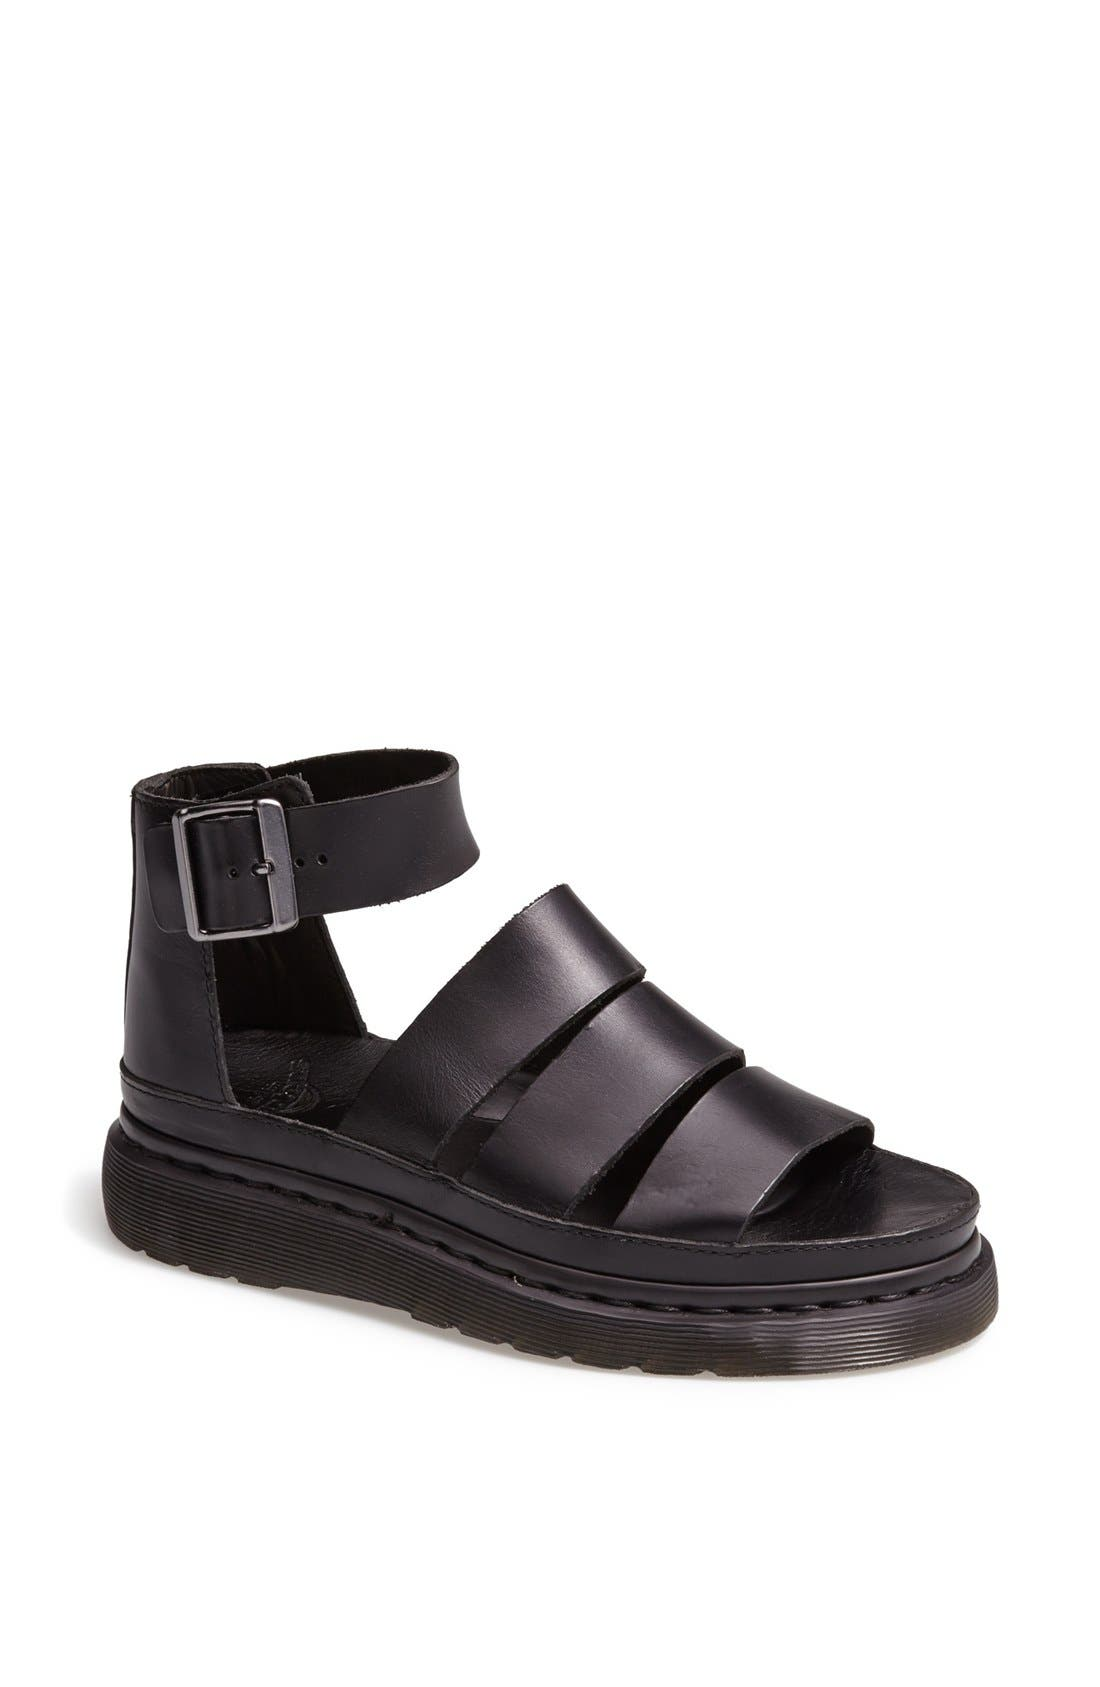 Alternate Image 1 Selected - Dr. Martens 'Clarissa' Leather Sandal